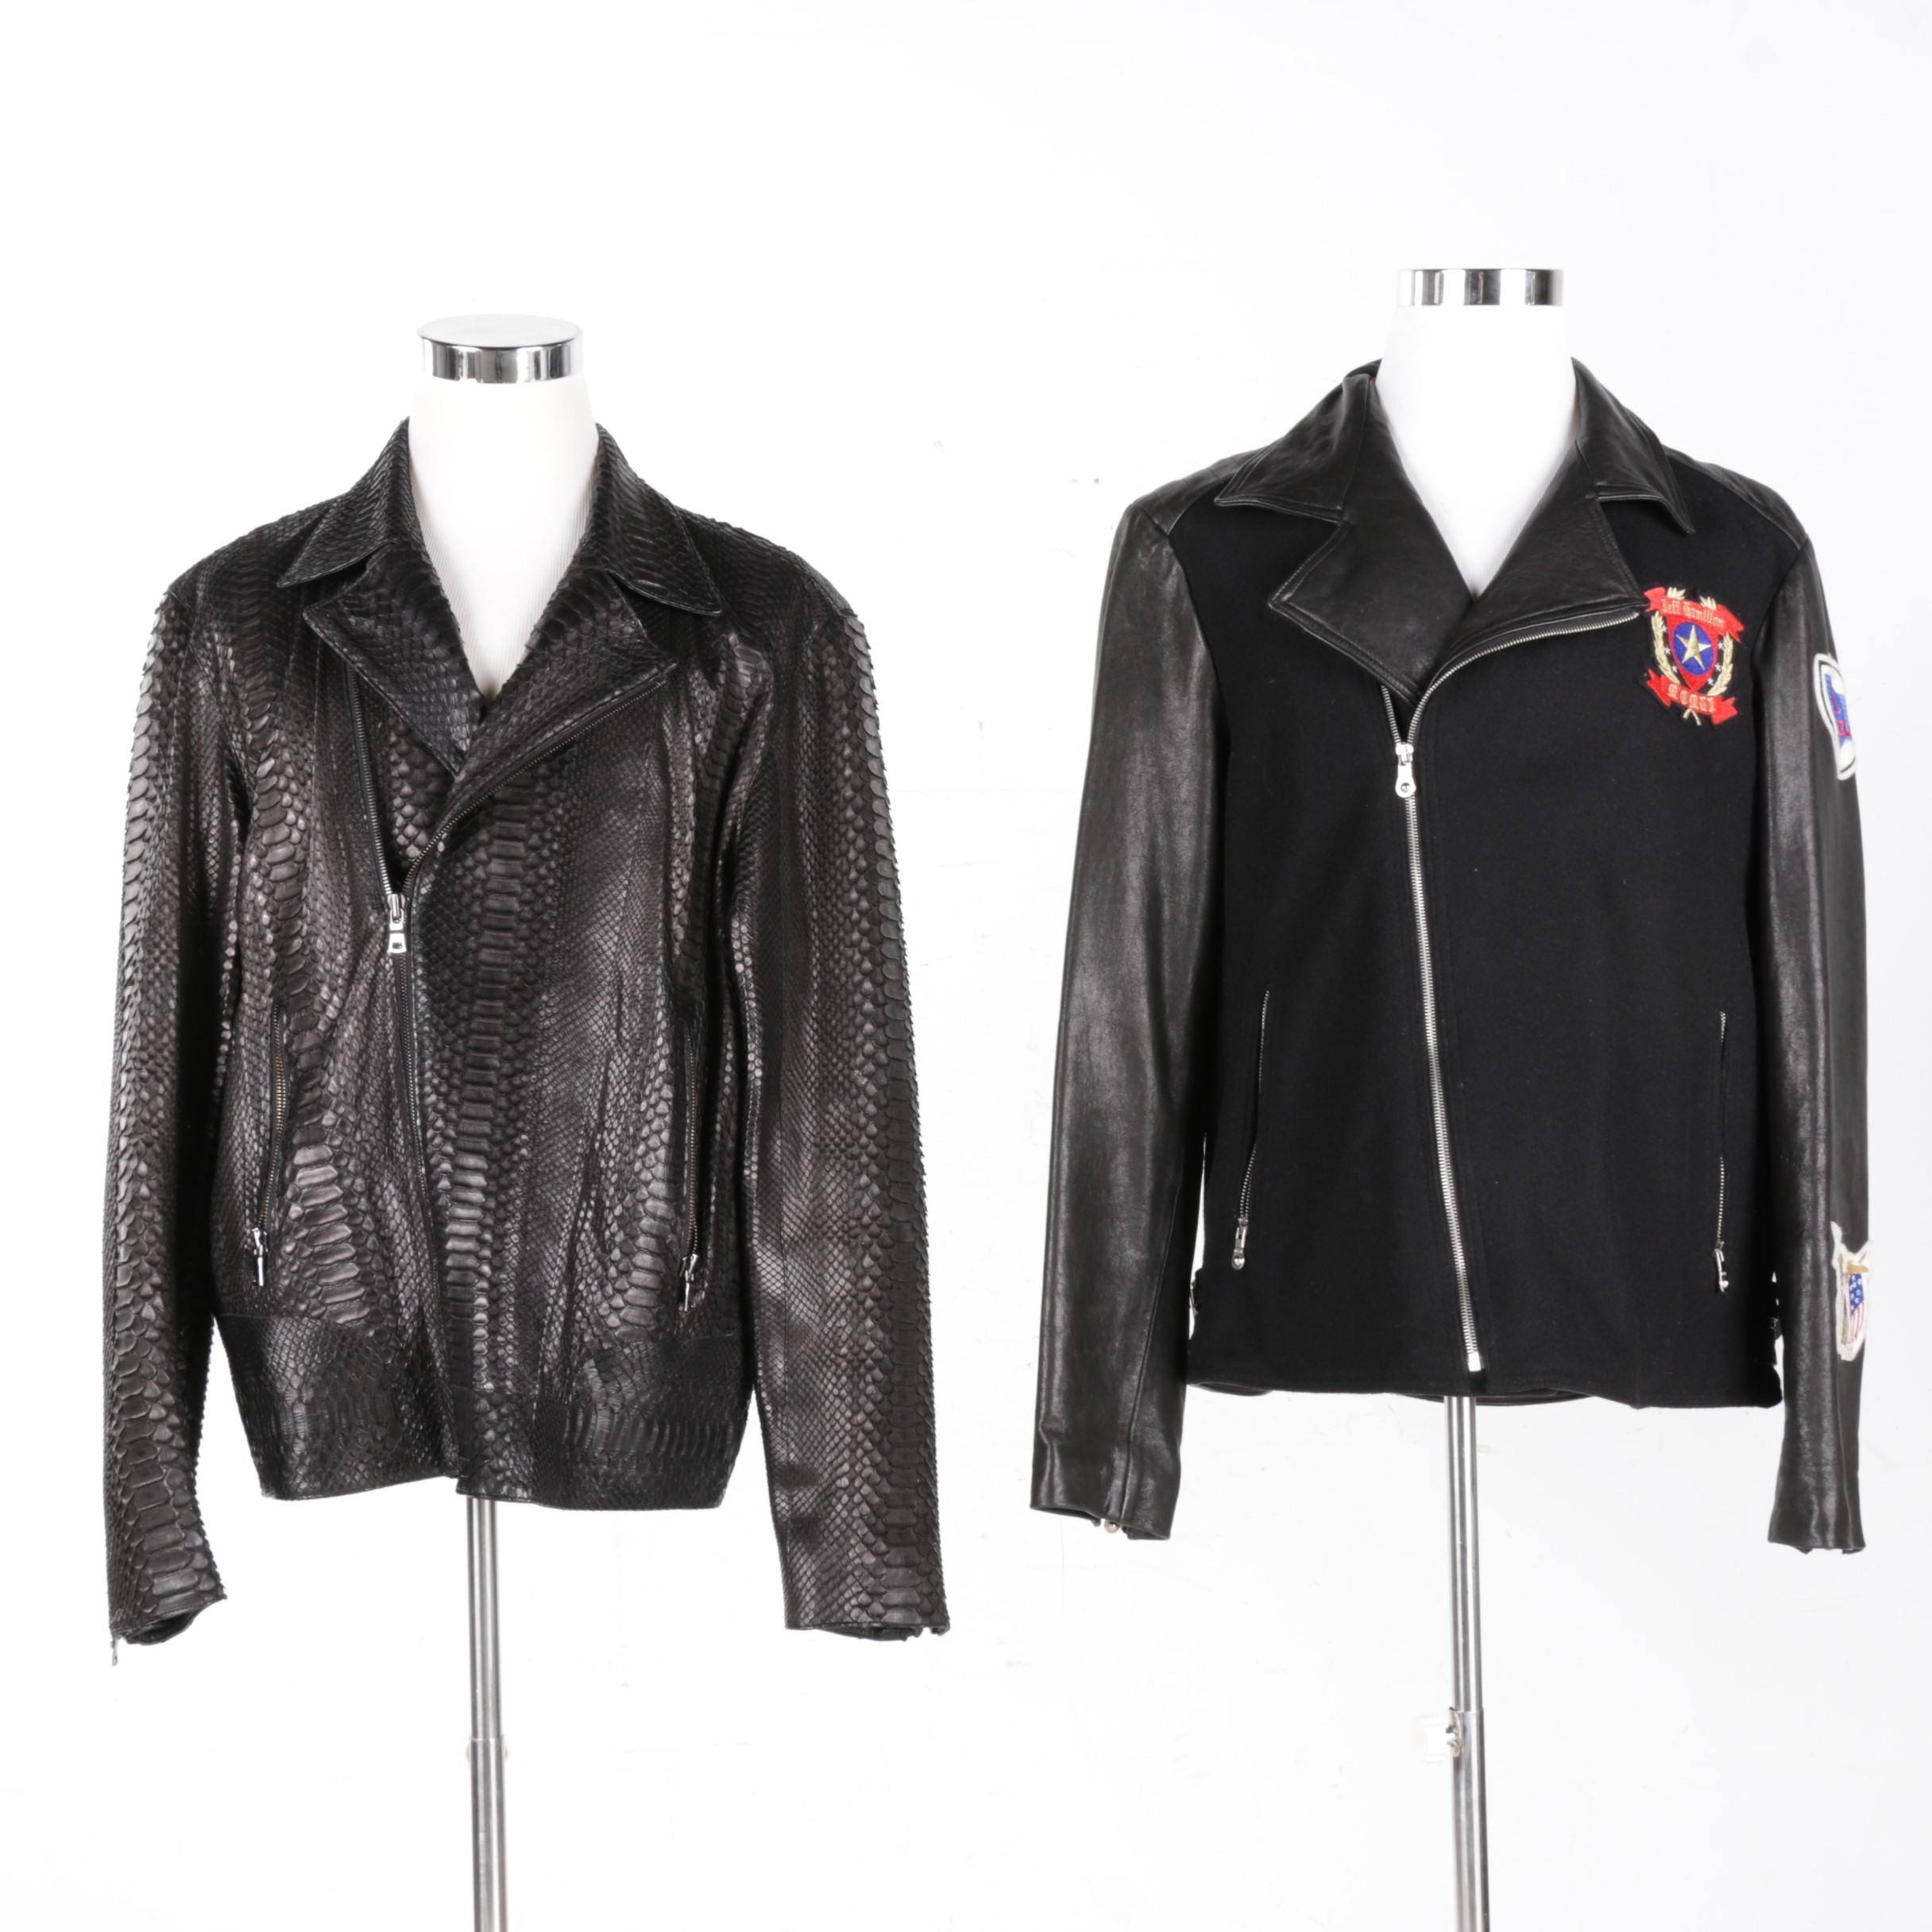 Jeff Hamilton Royal Enfield Motorcycle and Limited Edition Python Jackets